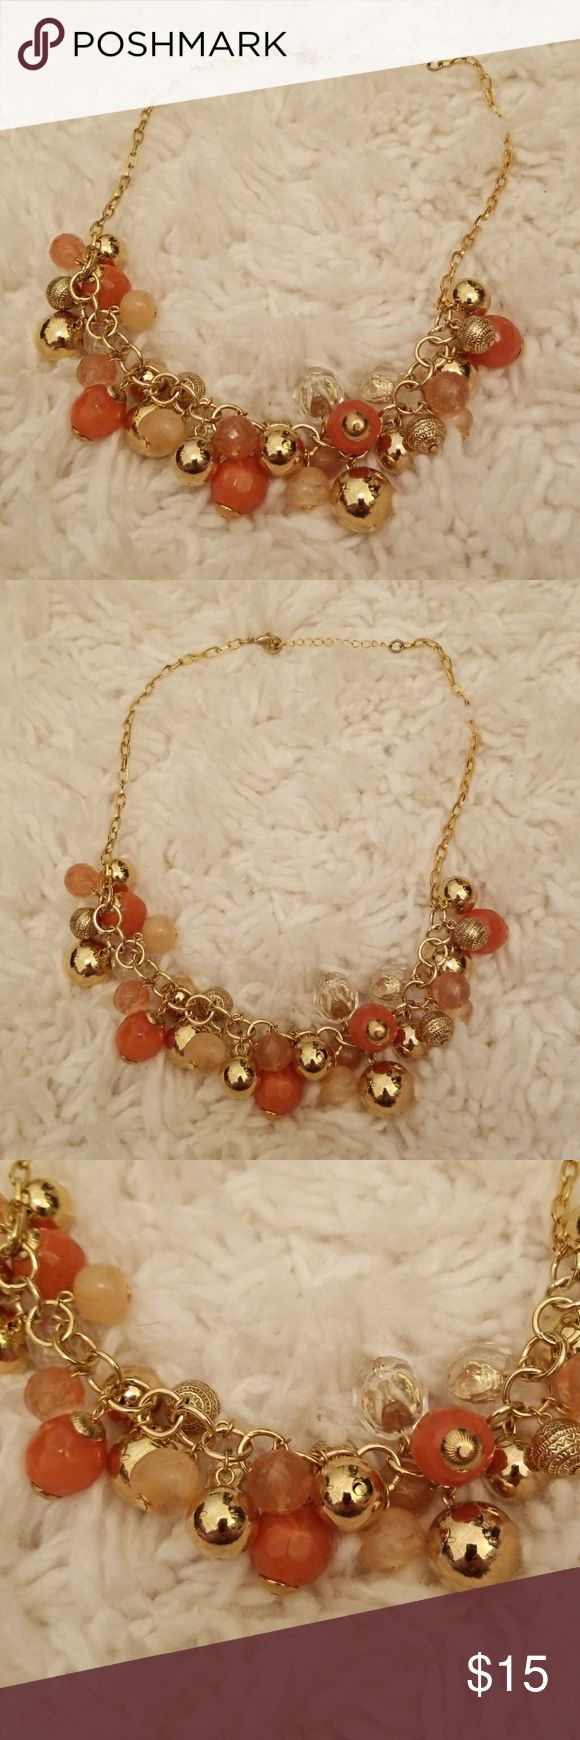 """Chico's Gold and Peach Necklace Chico's Gold and Pink Necklace. Gently worn, gold and peach beads. Adjustable length but 10"""" long. Check out my other listings for sale, I've got a ton! Bundle and save!  *All earnings go to the victims of hurricane Maria in PR* Chico's Jewelry Necklaces"""